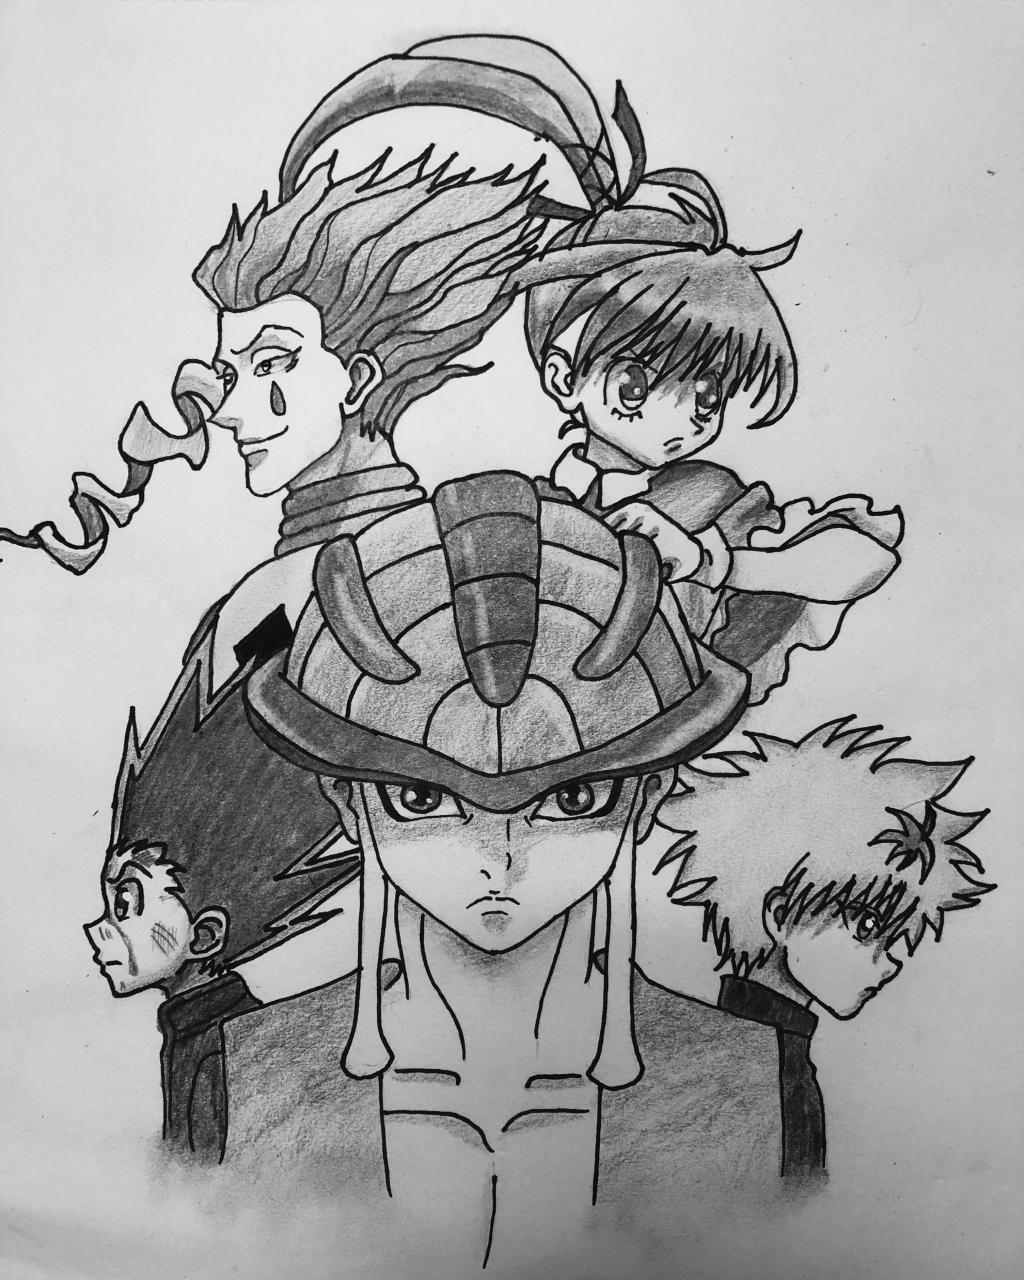 I recently did this Commission for a huge hunterxhunter fan